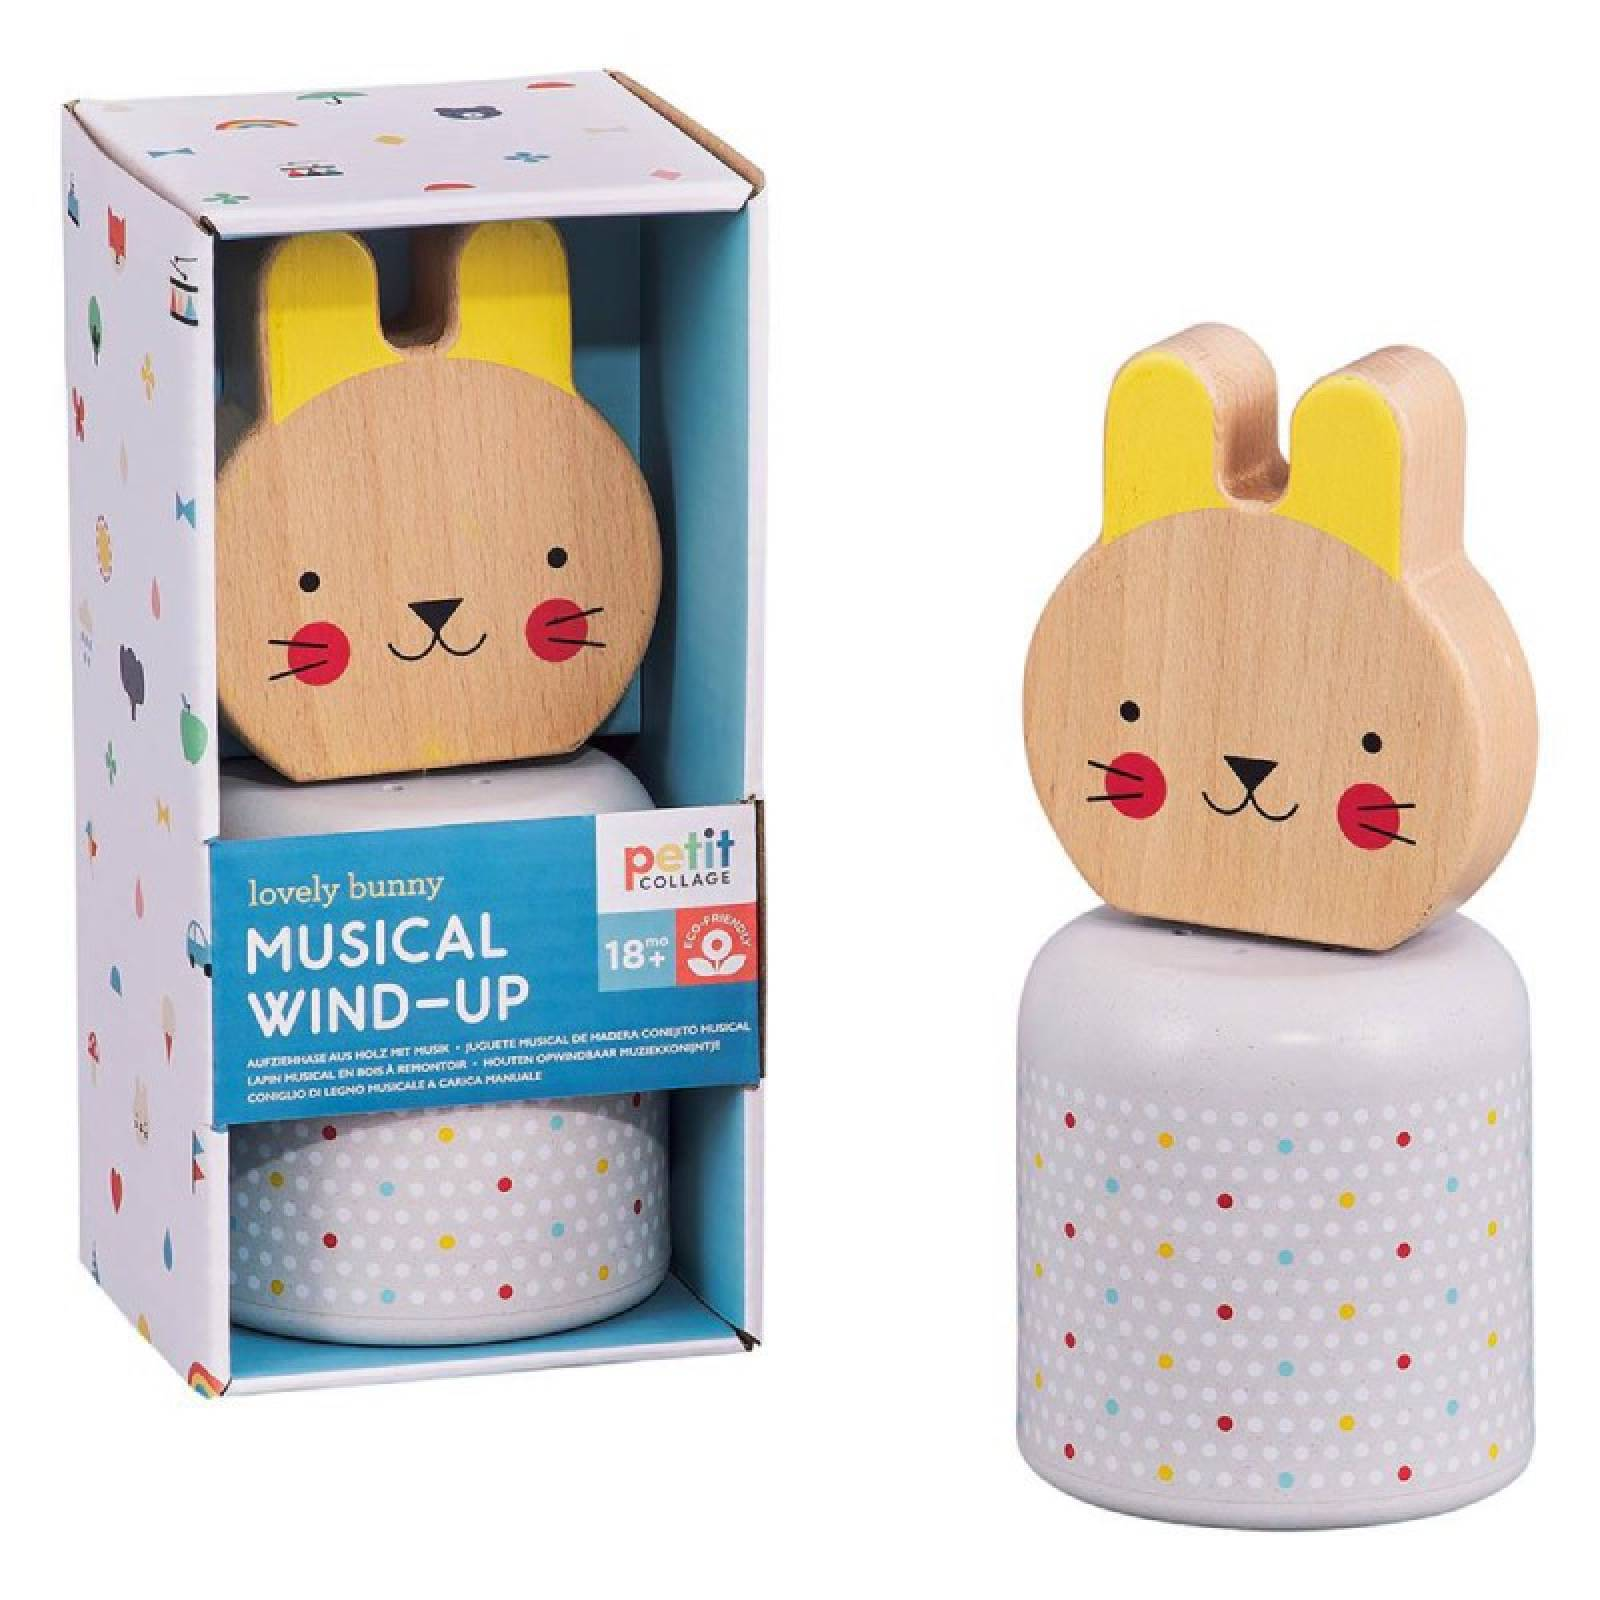 Wooden Wind-Up Musical Bunny Toy 18m+